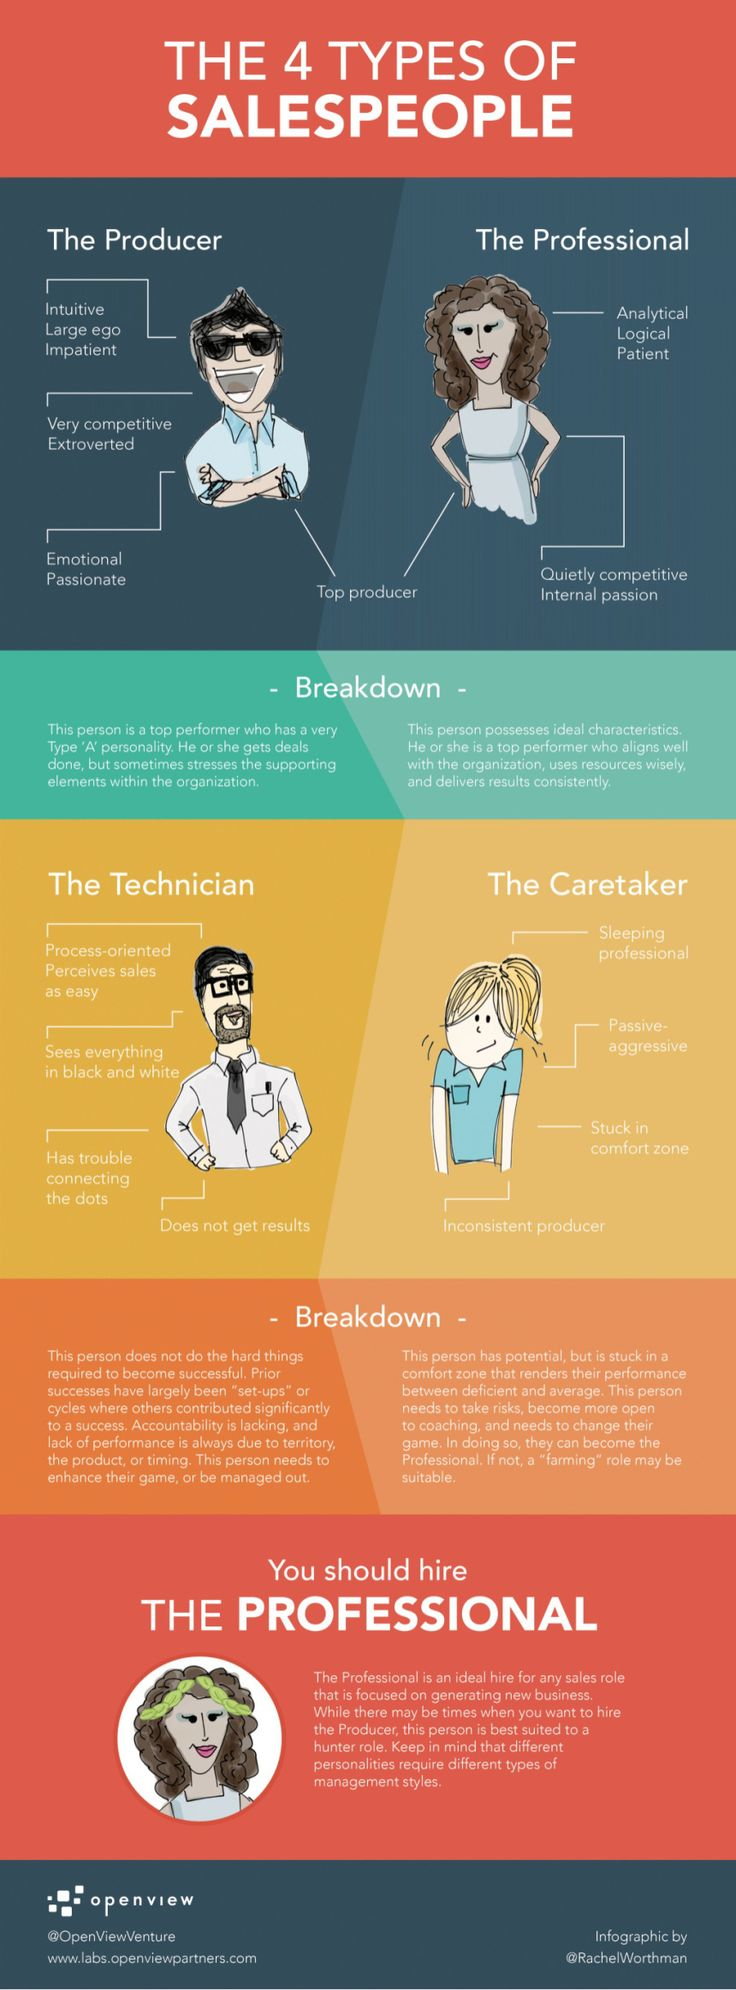 The 4 types of salespeople #INFOGRAPHIC #MARKETING